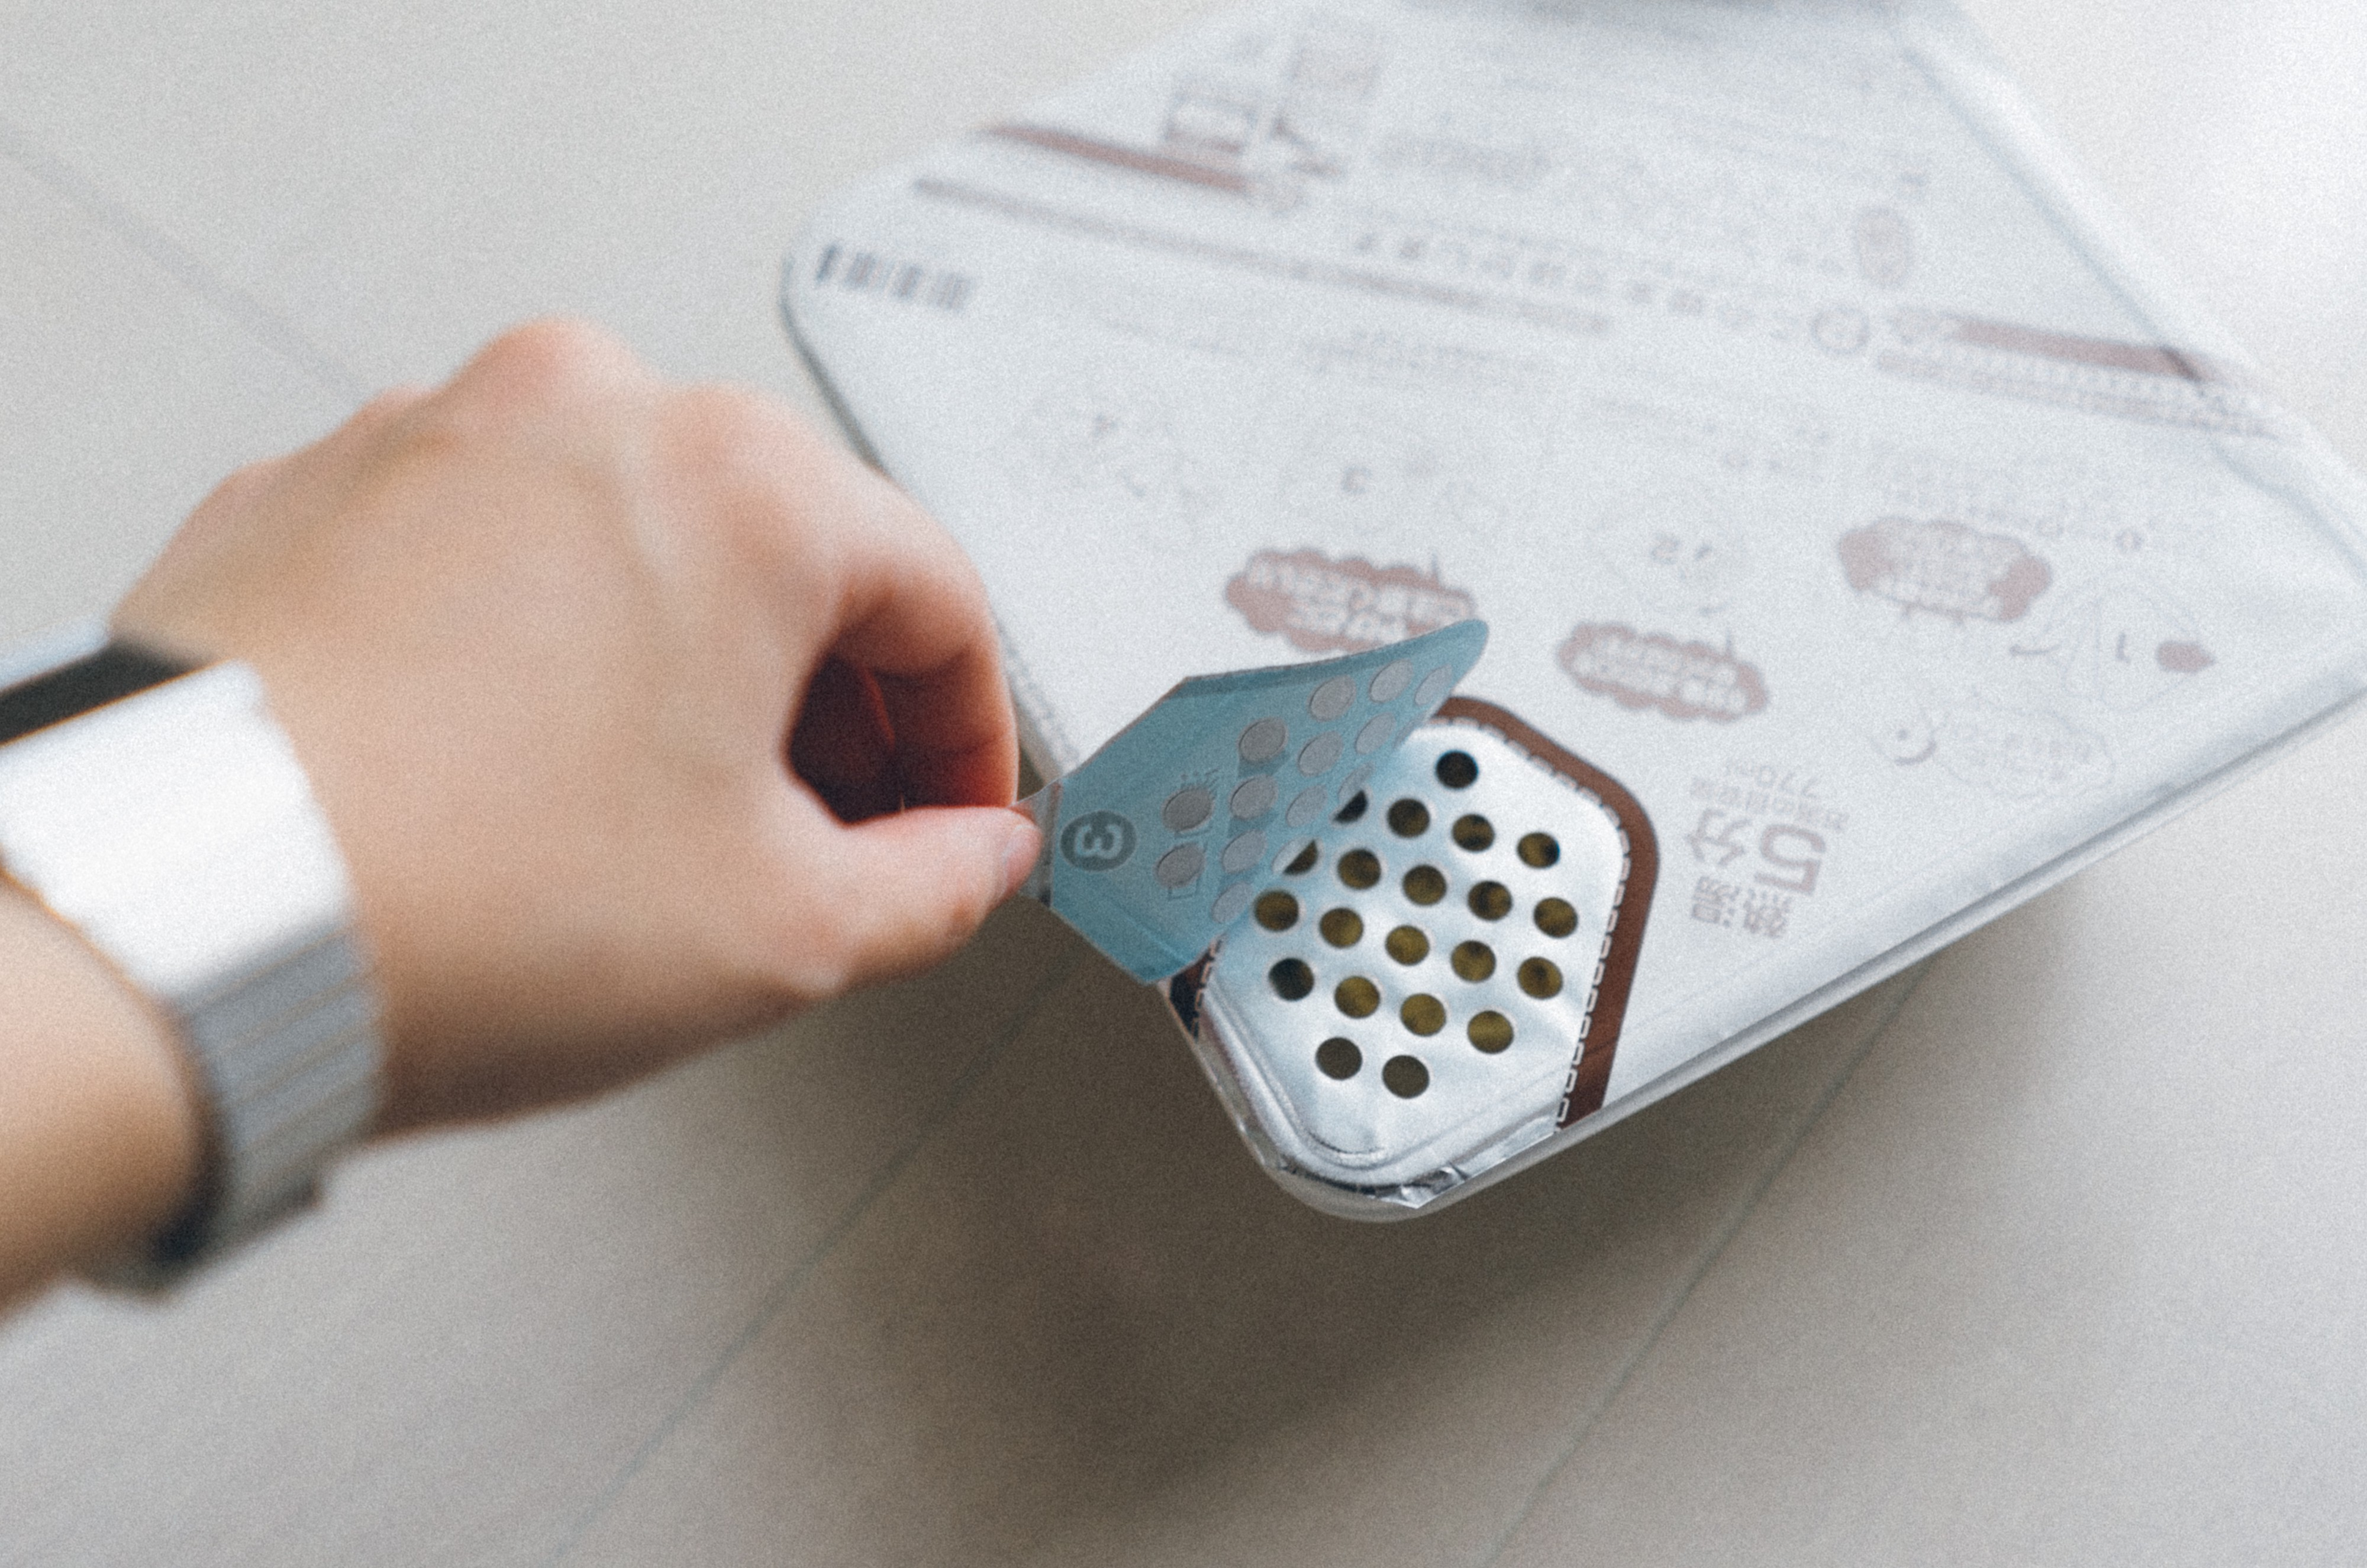 Considerate UX Design in Everyday Japanese Food Packaging (Photo Story)